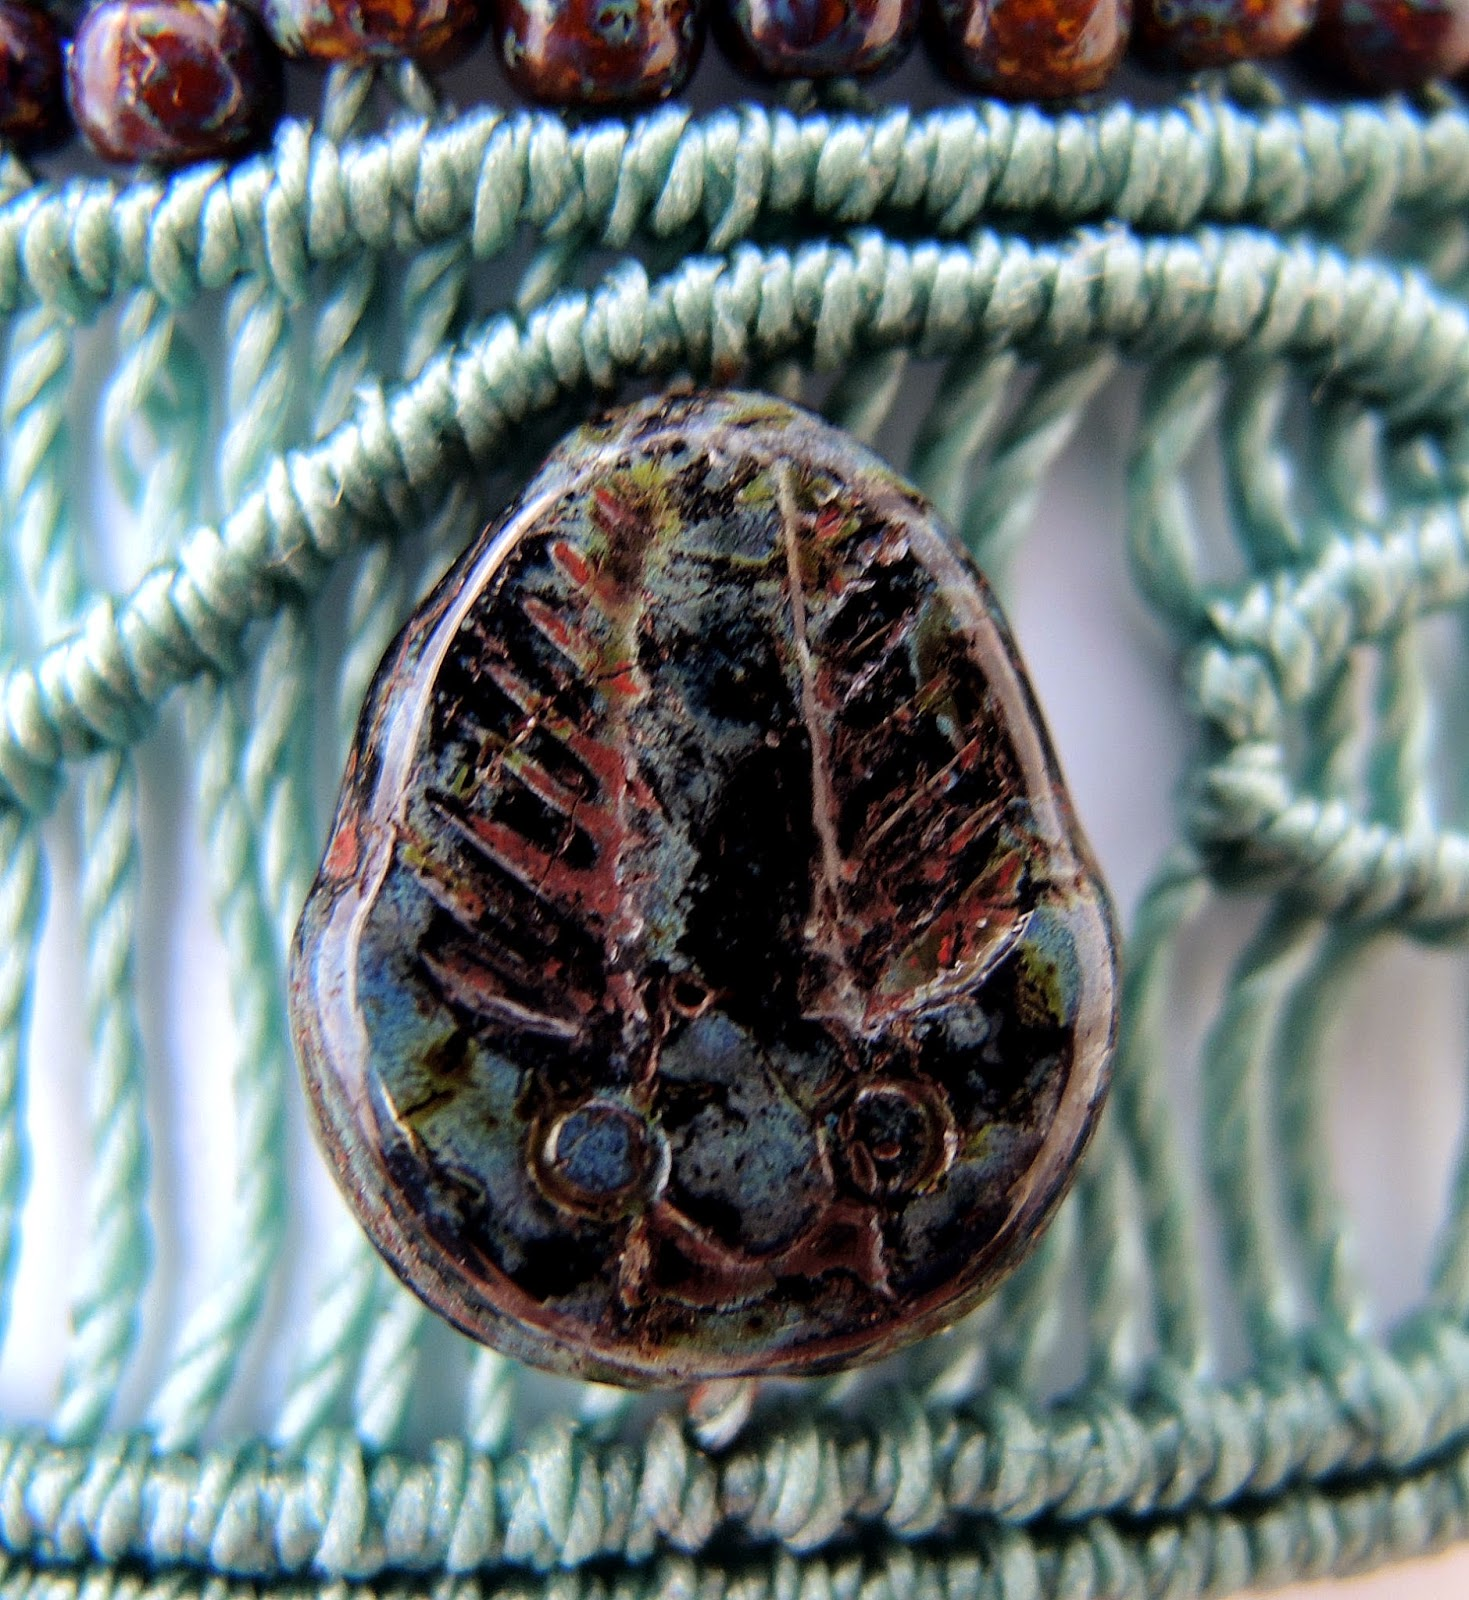 Czech glass trilobite bead set in micro macrame.